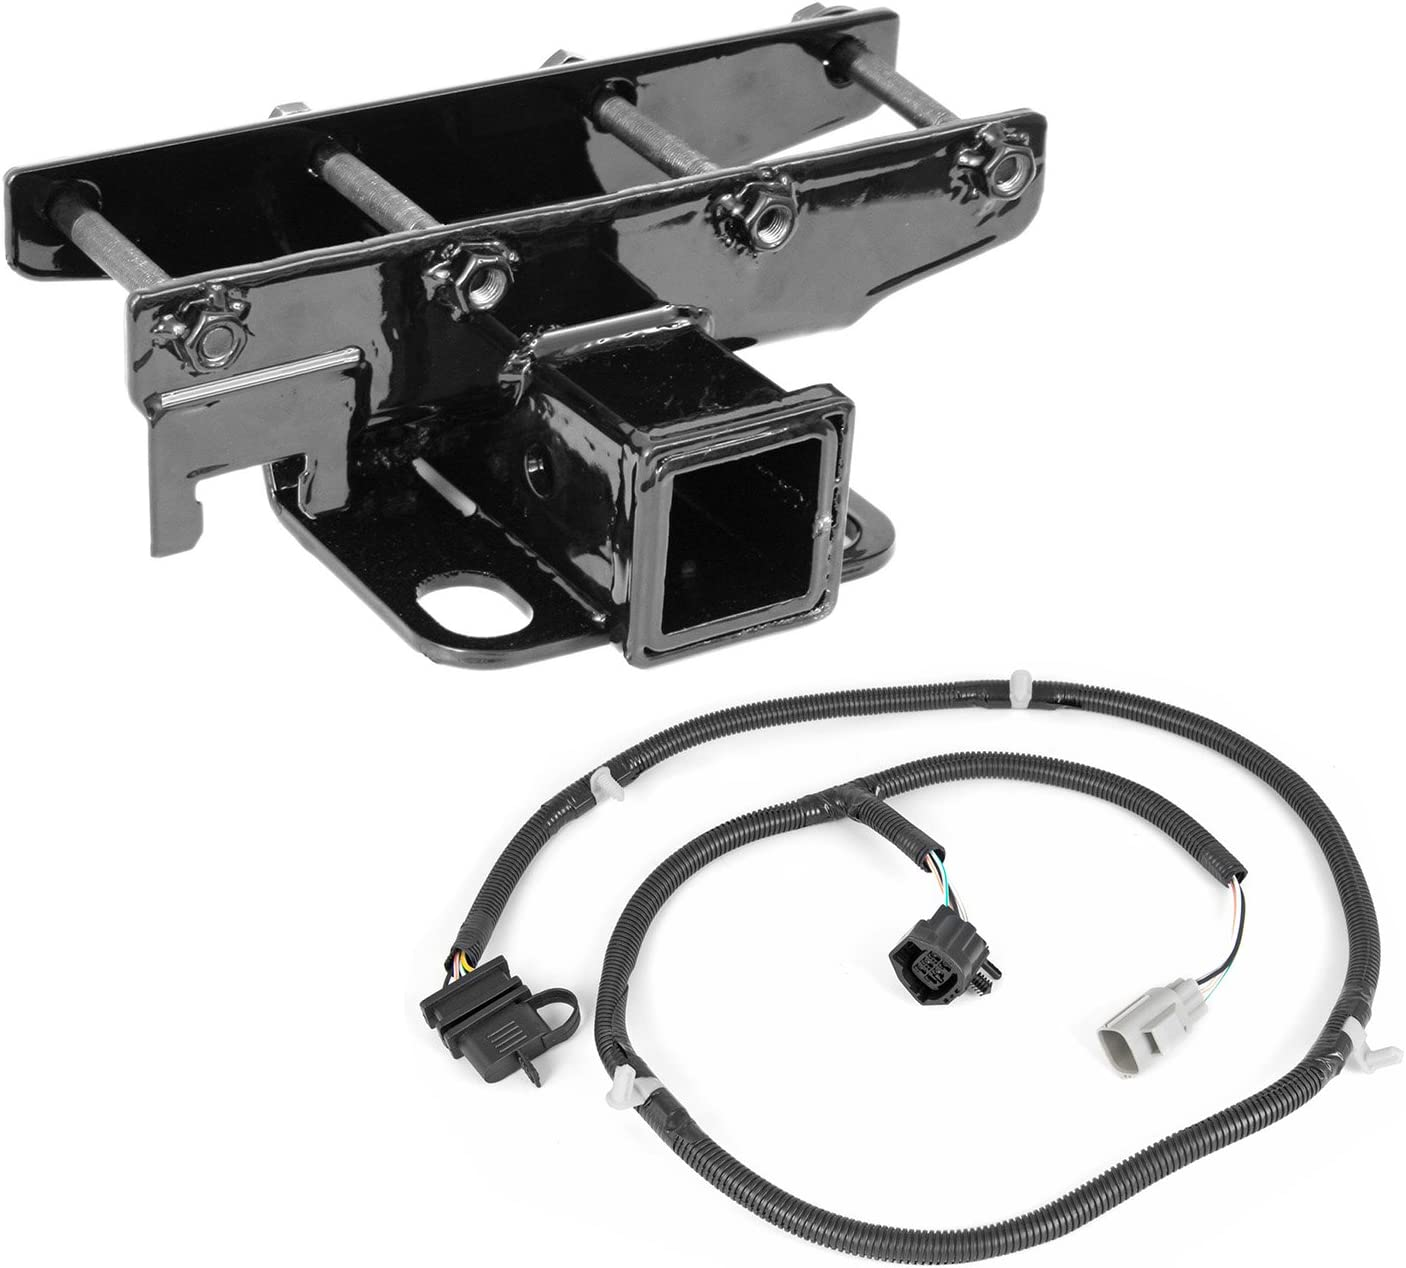 Max 42% OFF Outland 391158051 Receiver Hitch Kit JK for with Wiring Max 51% OFF Harness